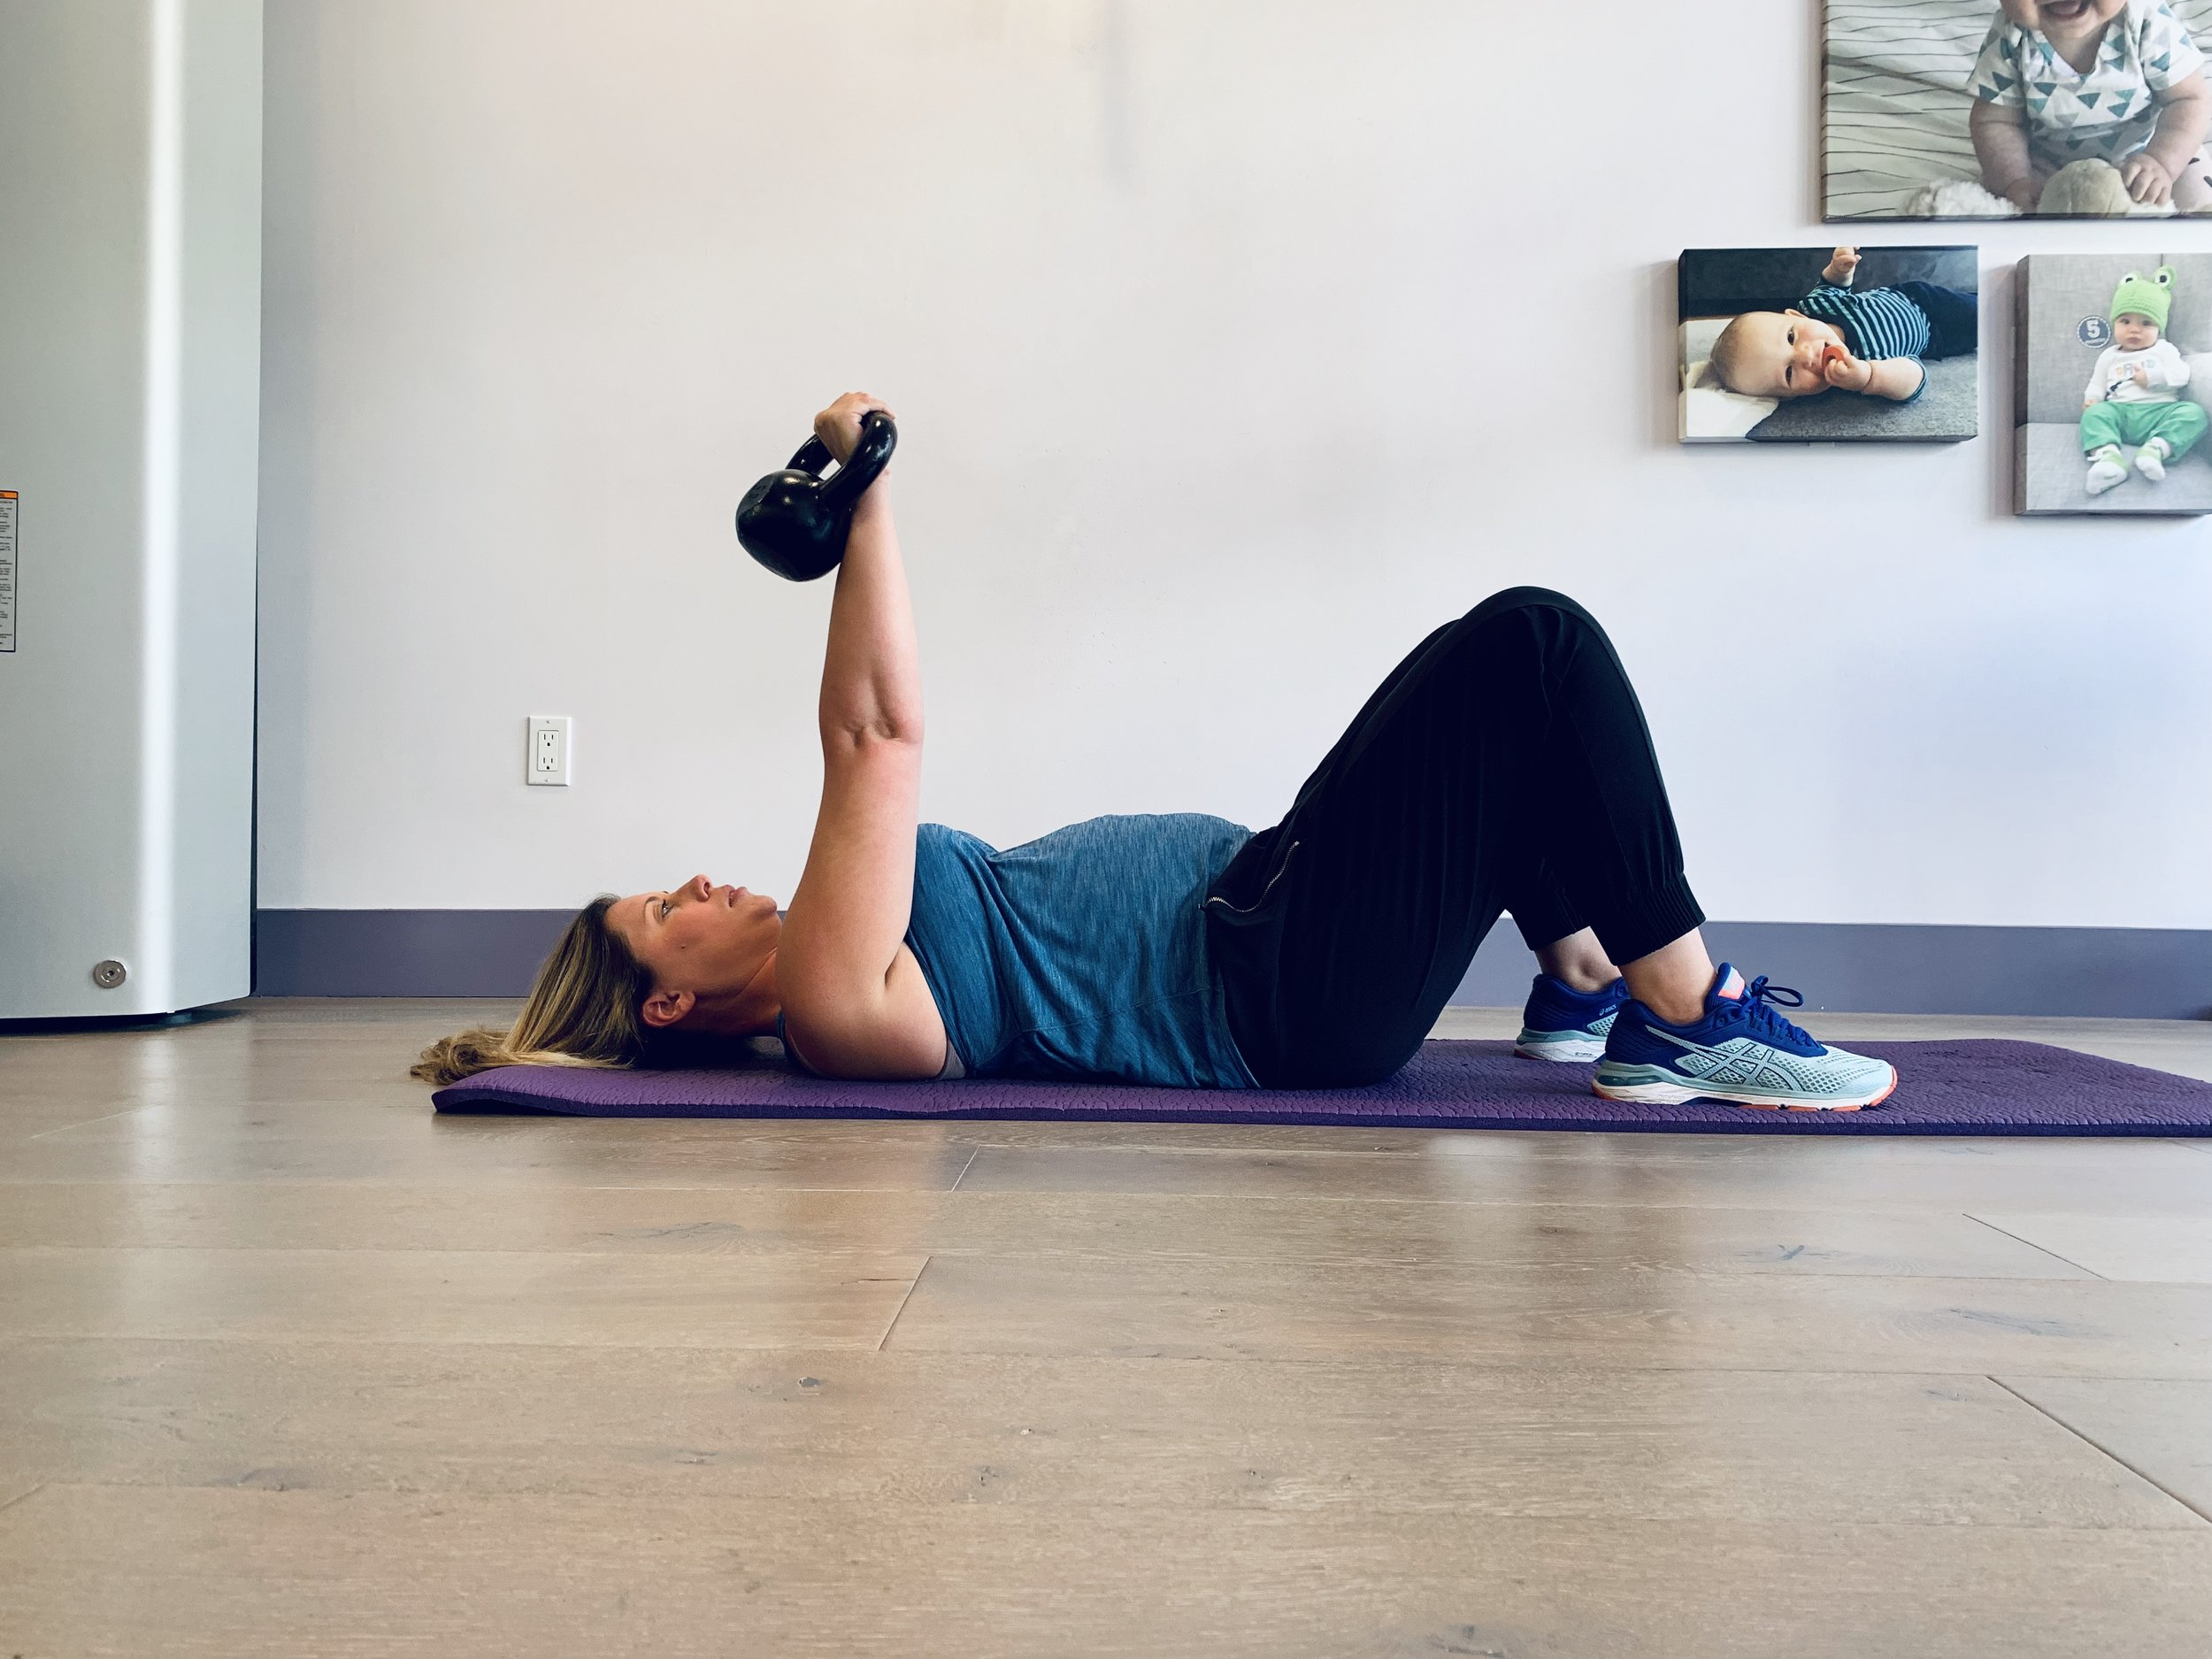 30 weeks pregnant and exercising on her back